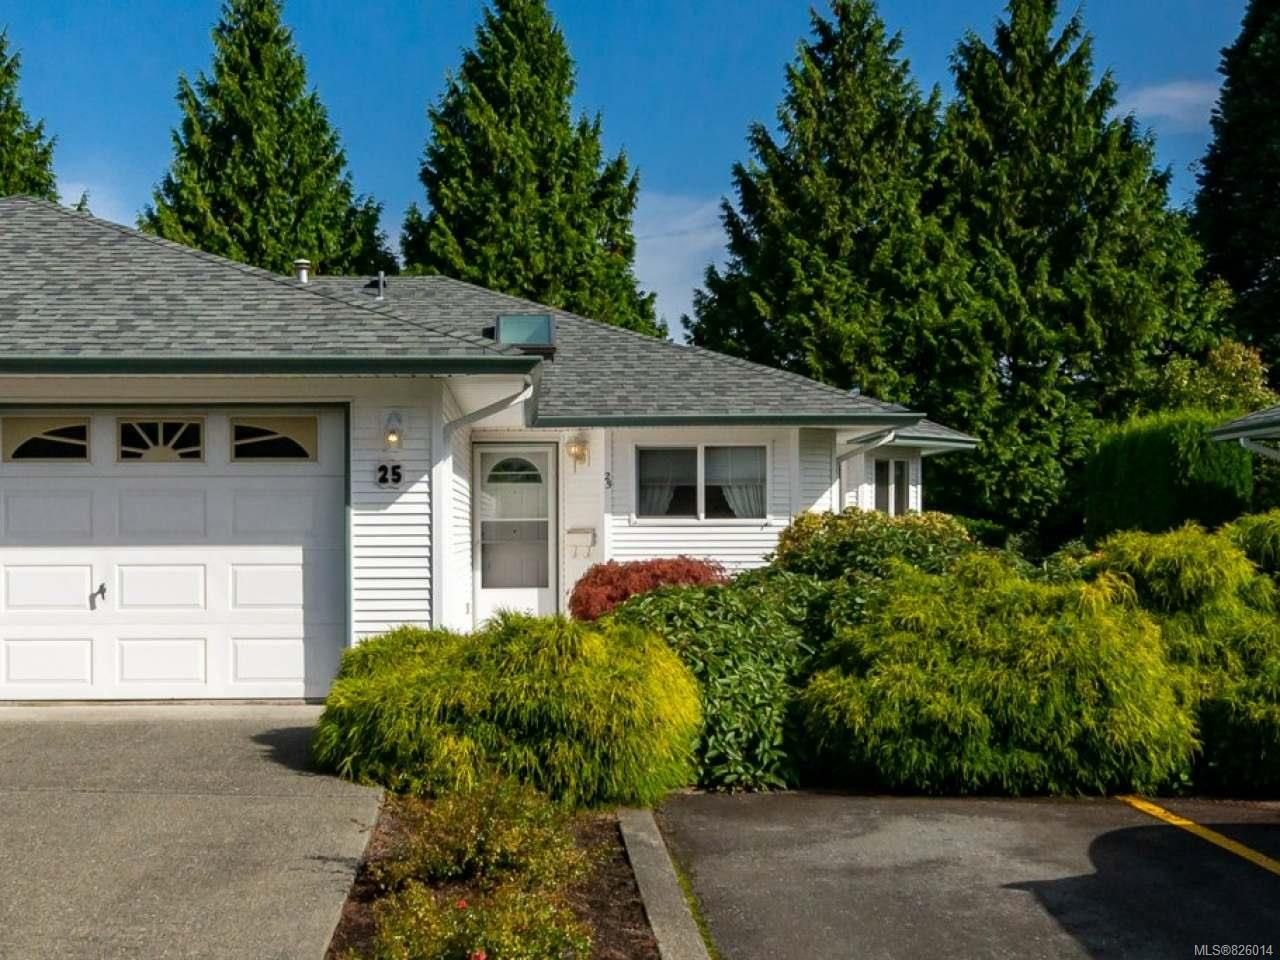 Main Photo: 25 396 Harrogate Rd in CAMPBELL RIVER: CR Willow Point Row/Townhouse for sale (Campbell River)  : MLS®# 826014